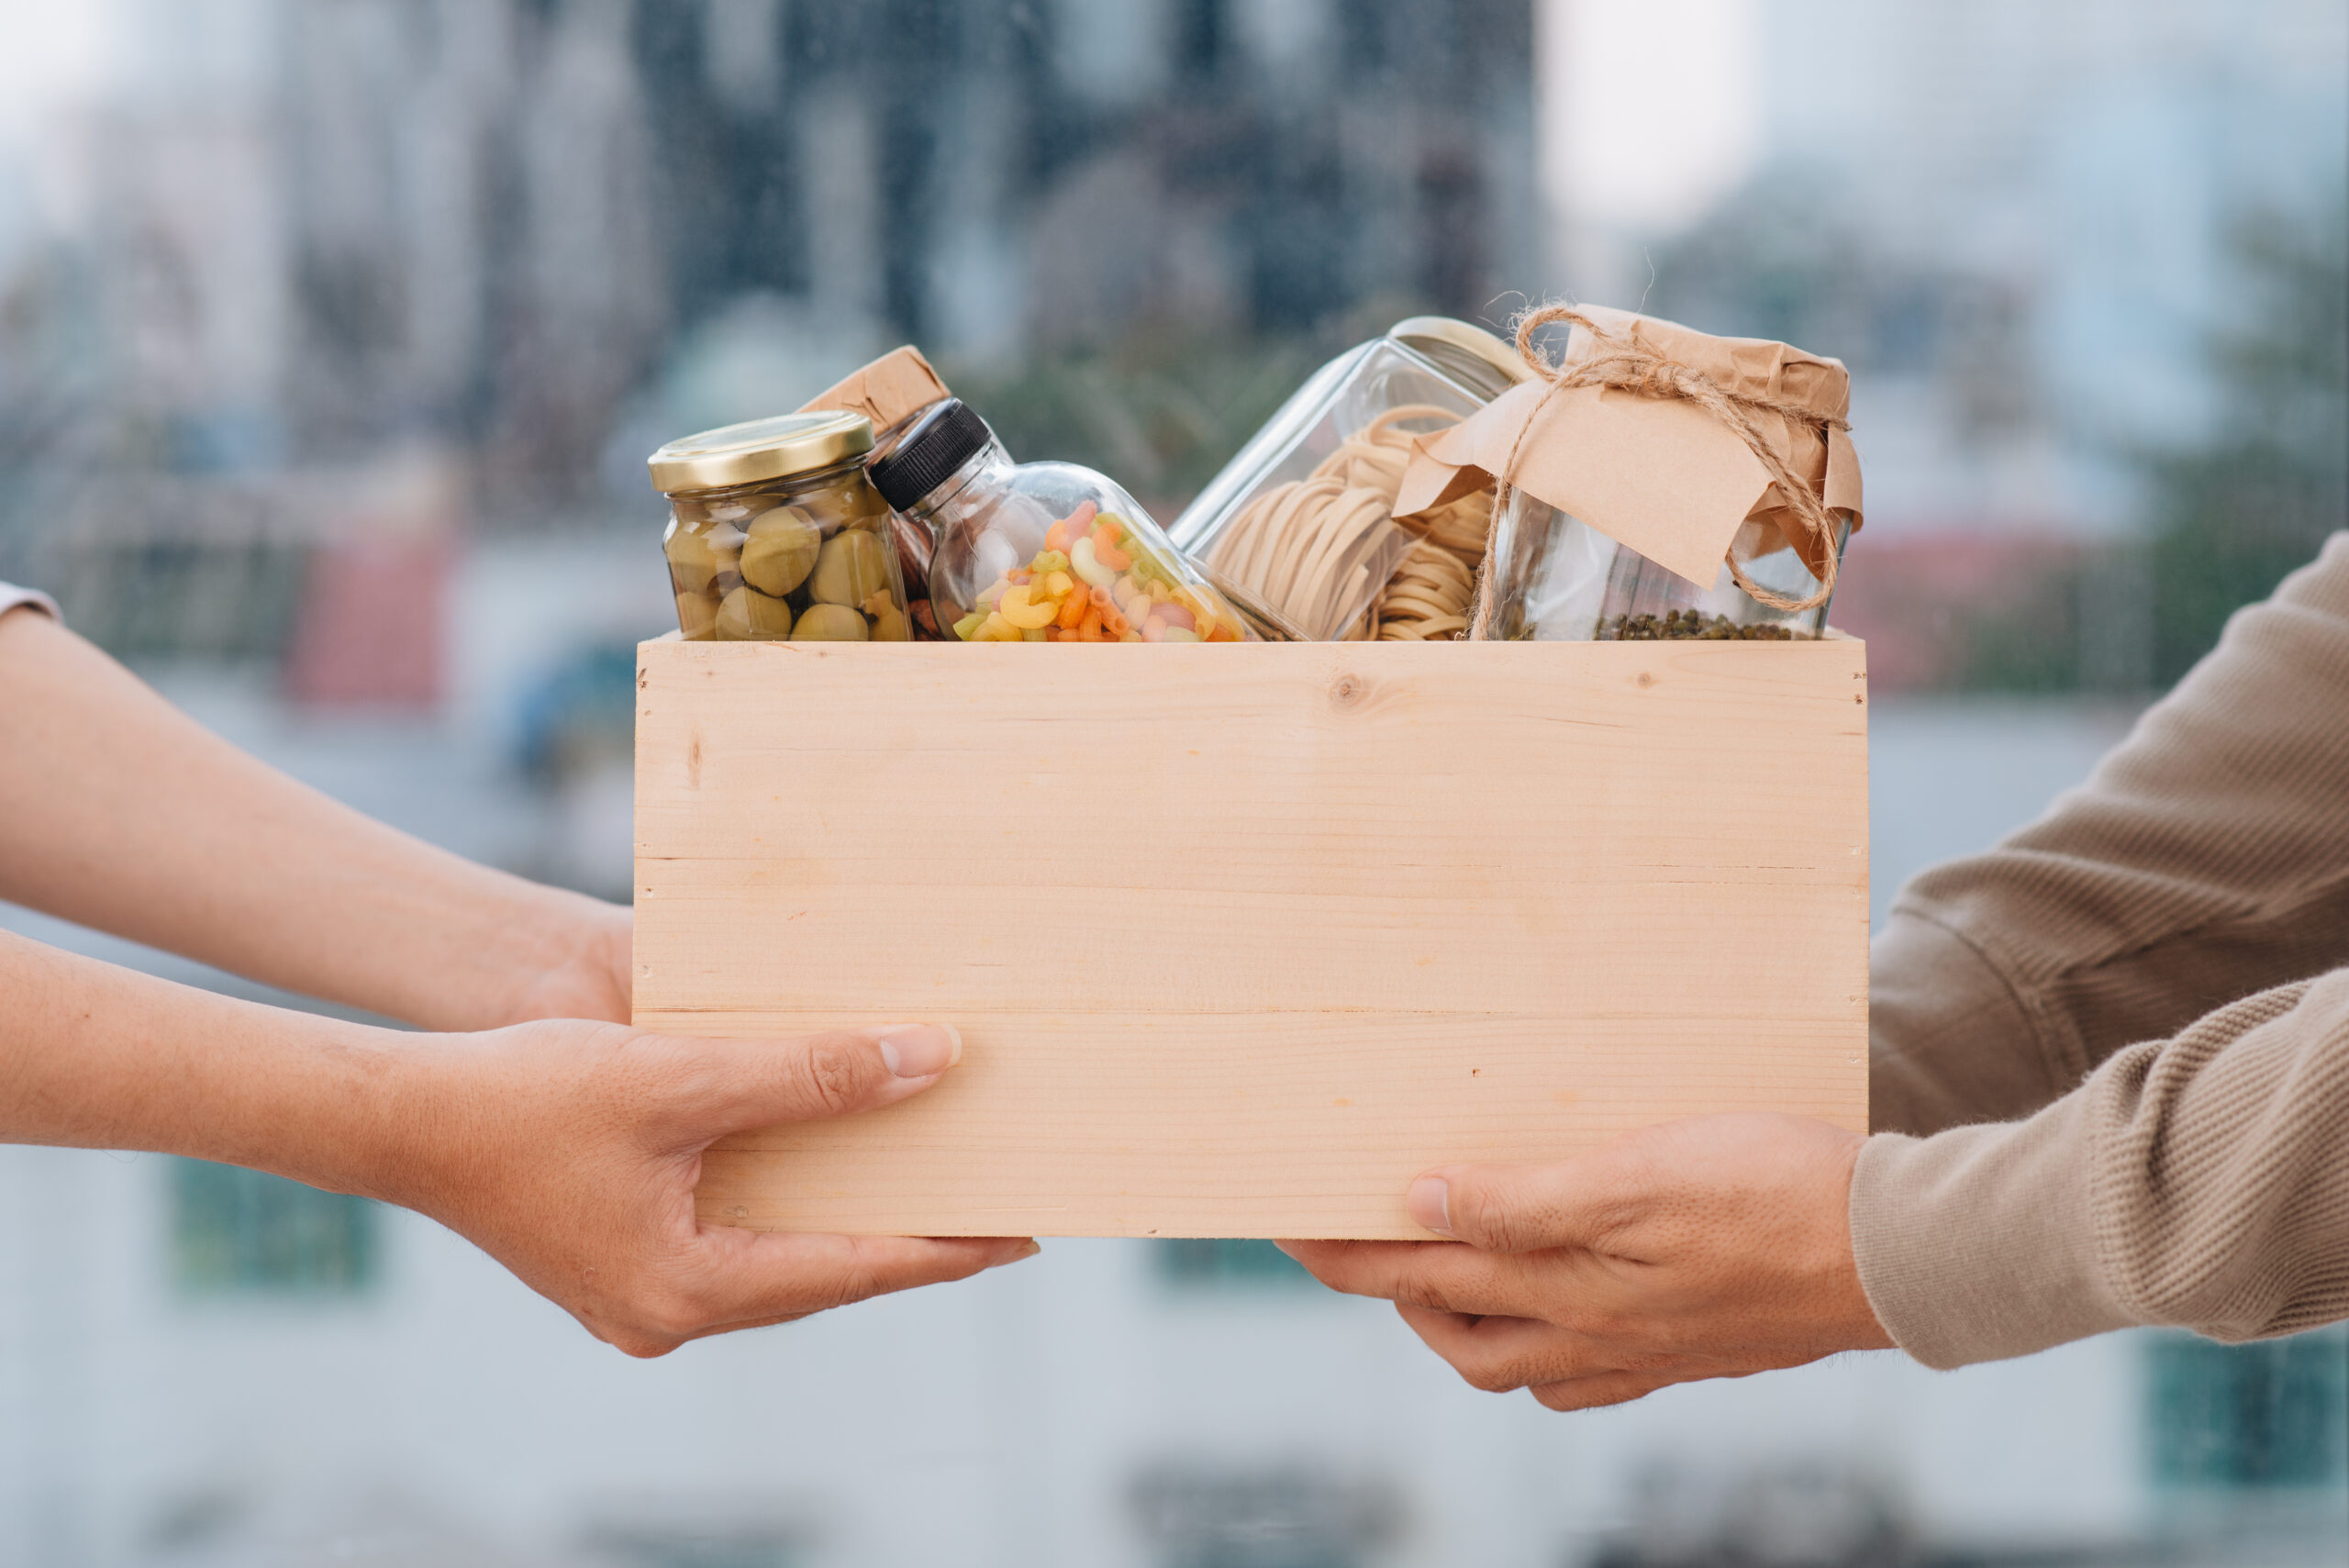 How to get rid of food while moving